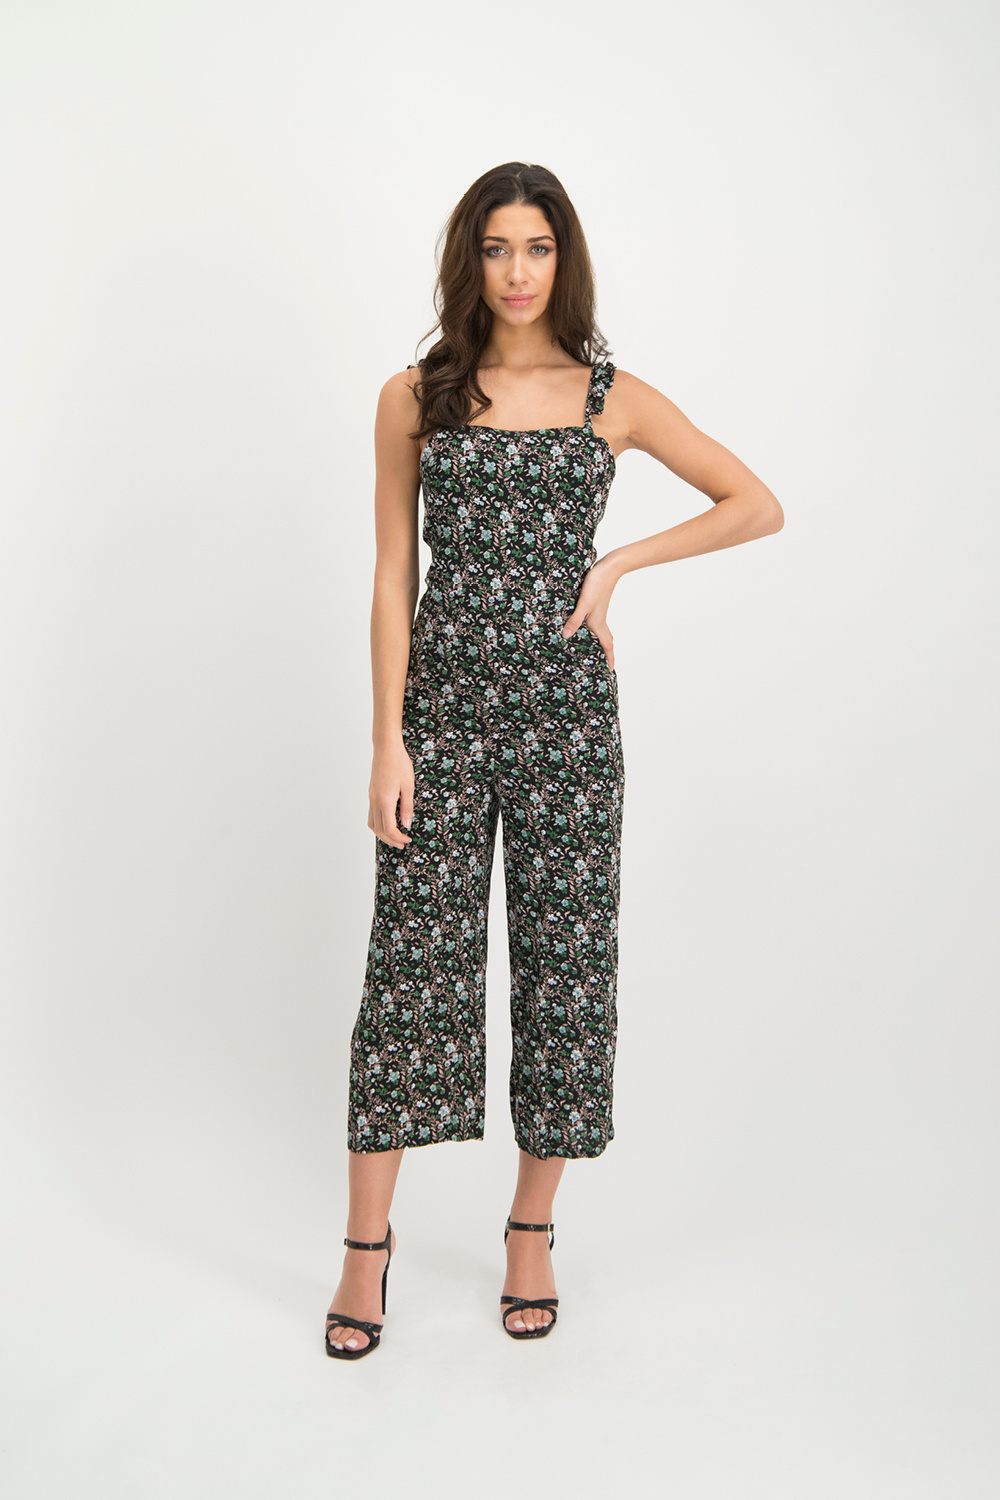 Lofty Manner Donkere Jumpsuit Rozy